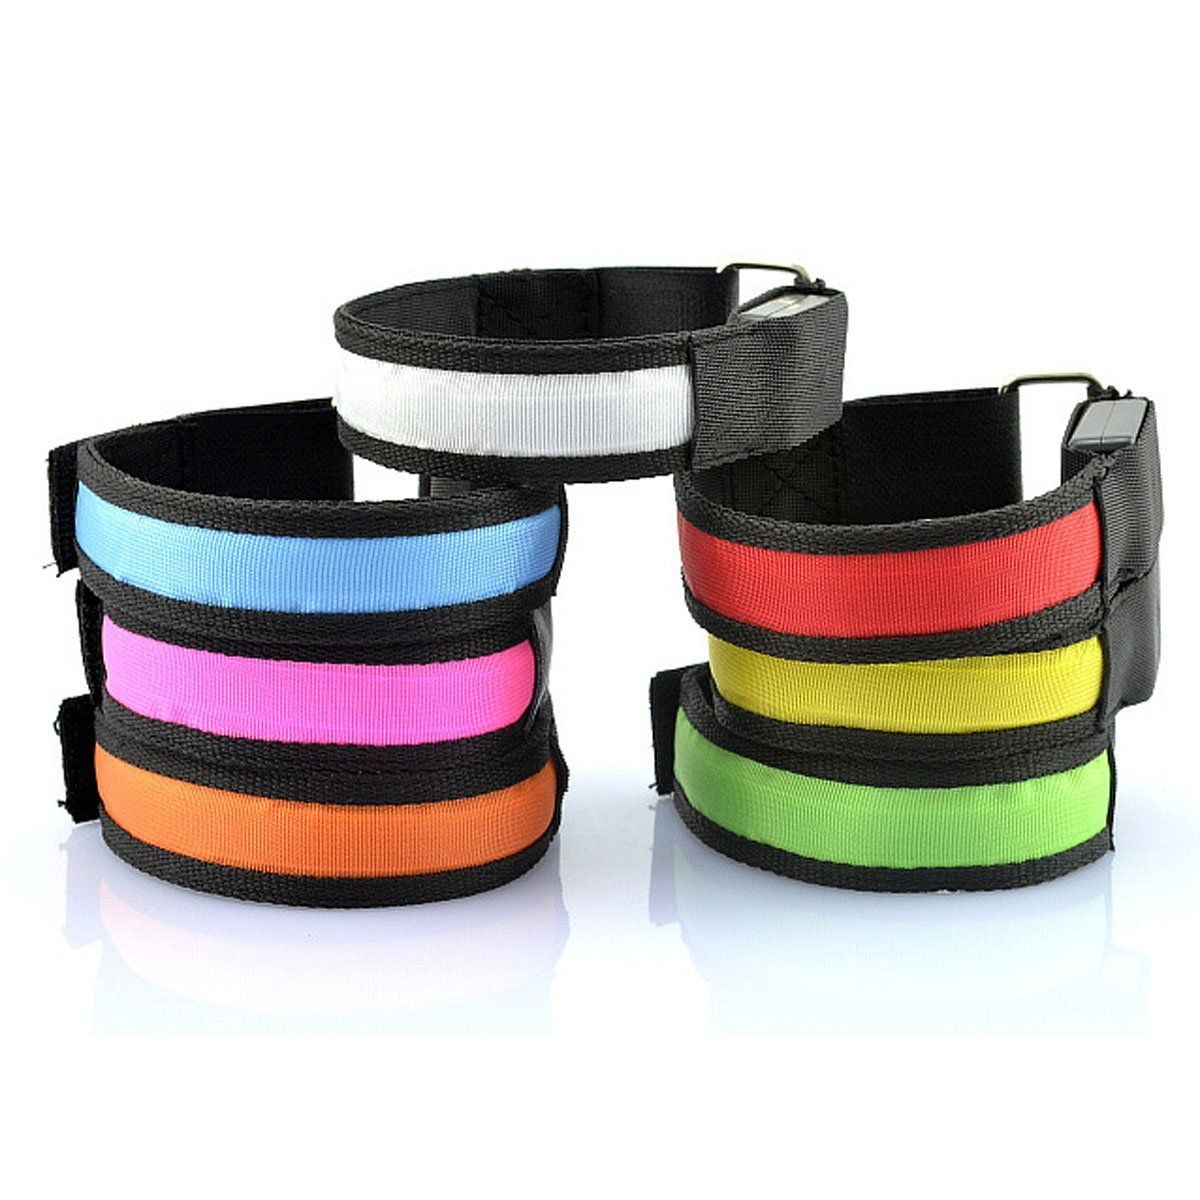 1 Pc Running Light Sports LED Wristbands Adjustable Glowing Bracelets For Runners Joggers Cyclists Riding Safety Bike Bicycle